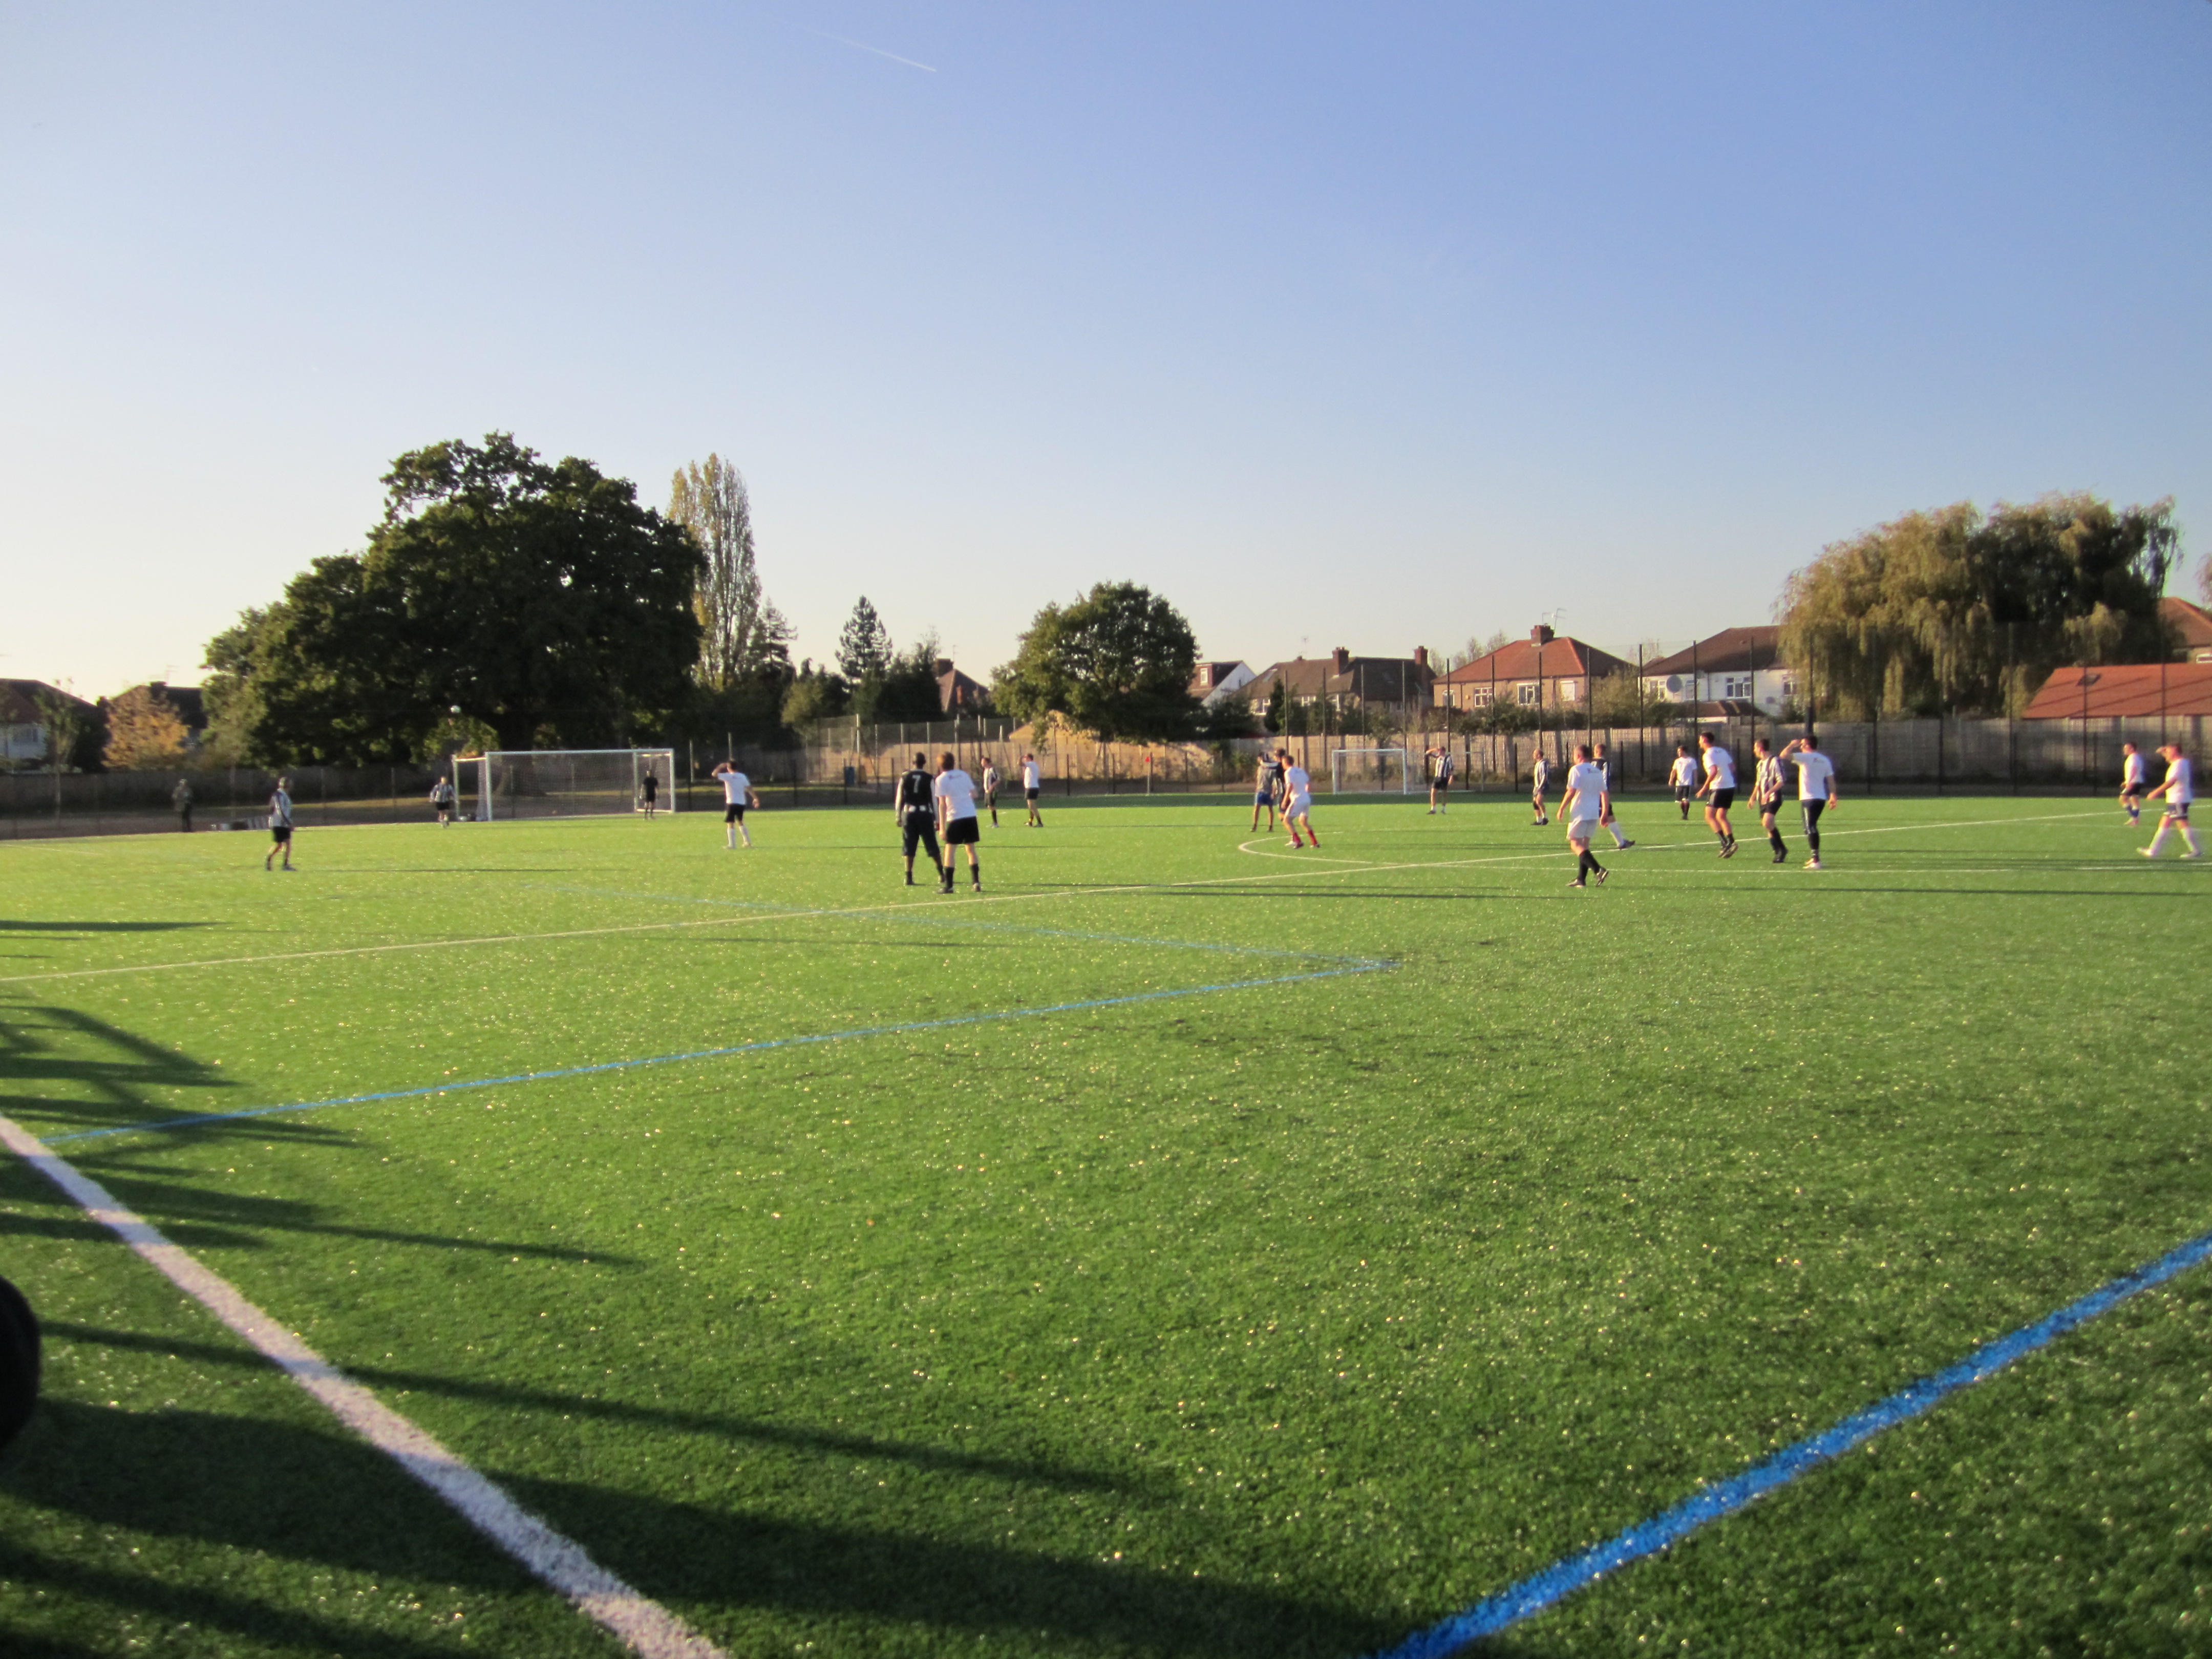 Construction of full size 3G/ FIFA 1* accredited Pitch at Whitmore High School